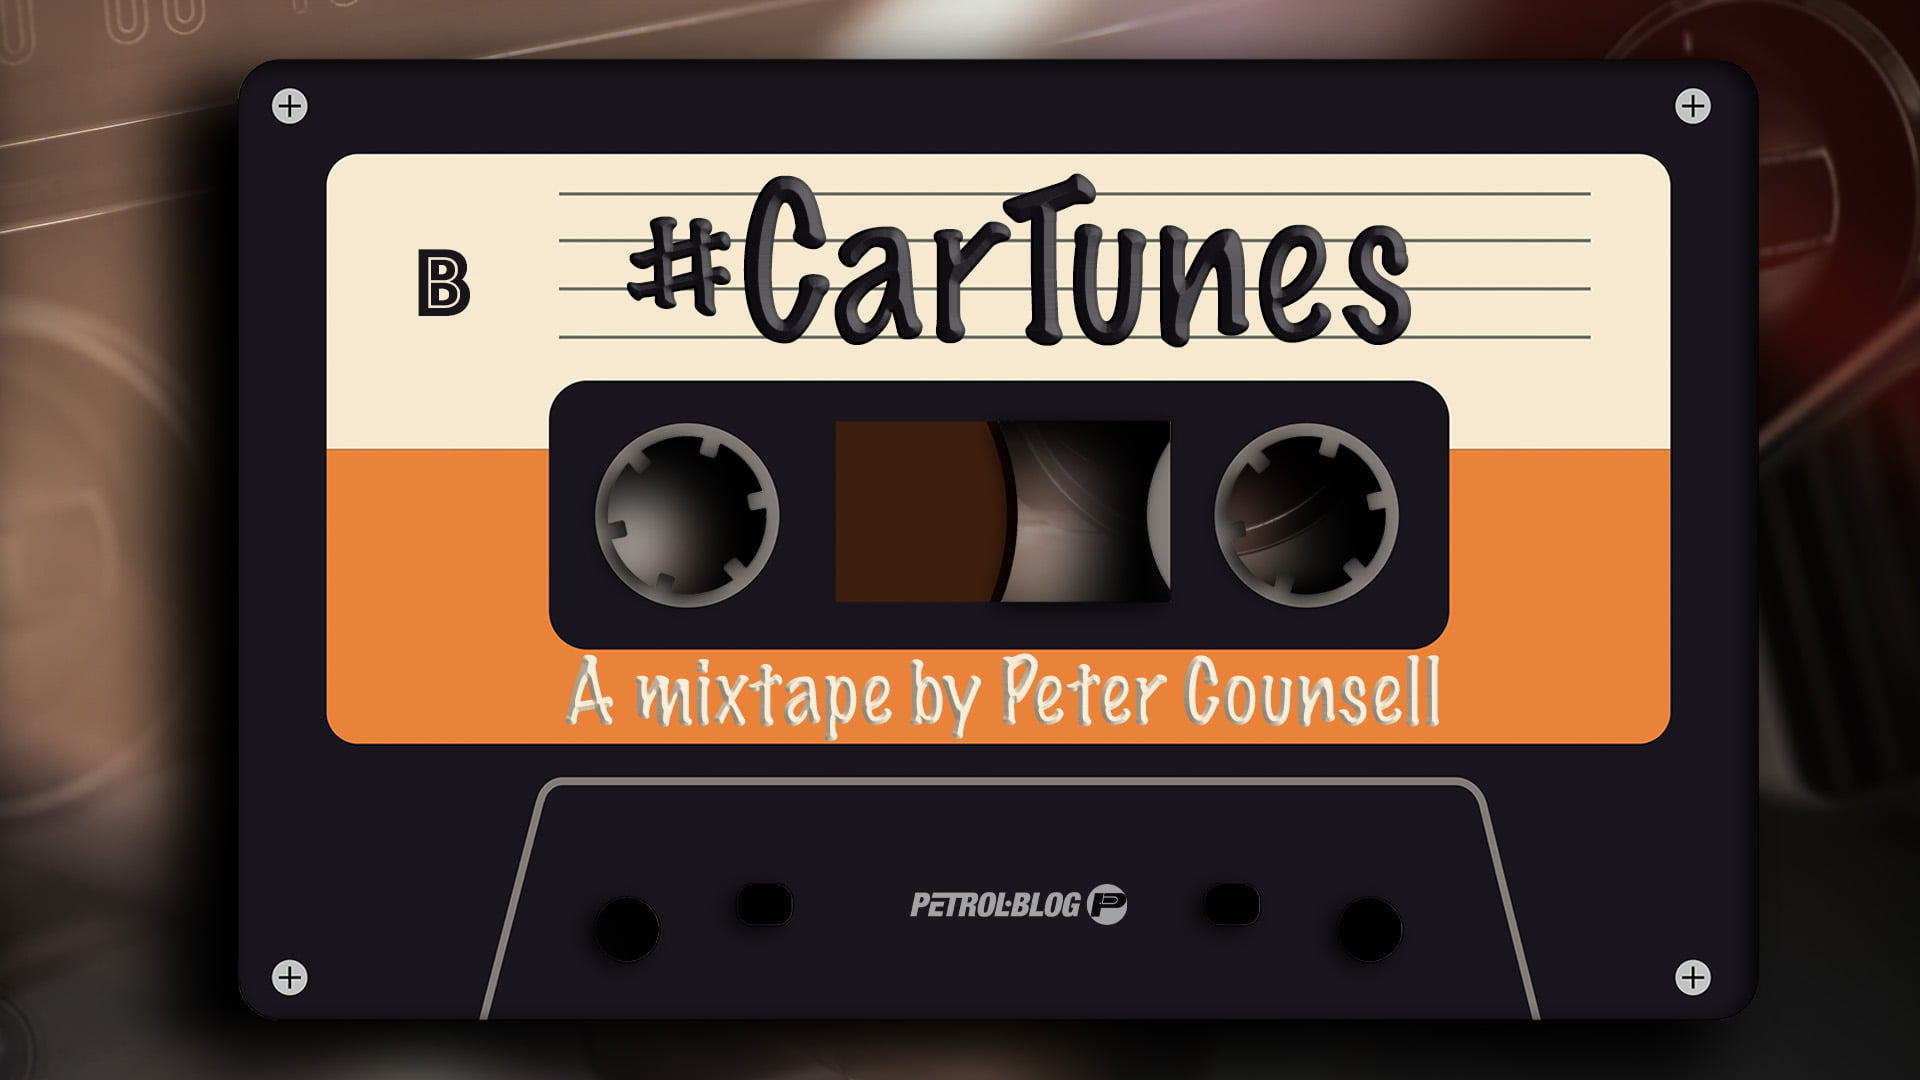 CarTunes by Peter Counsell